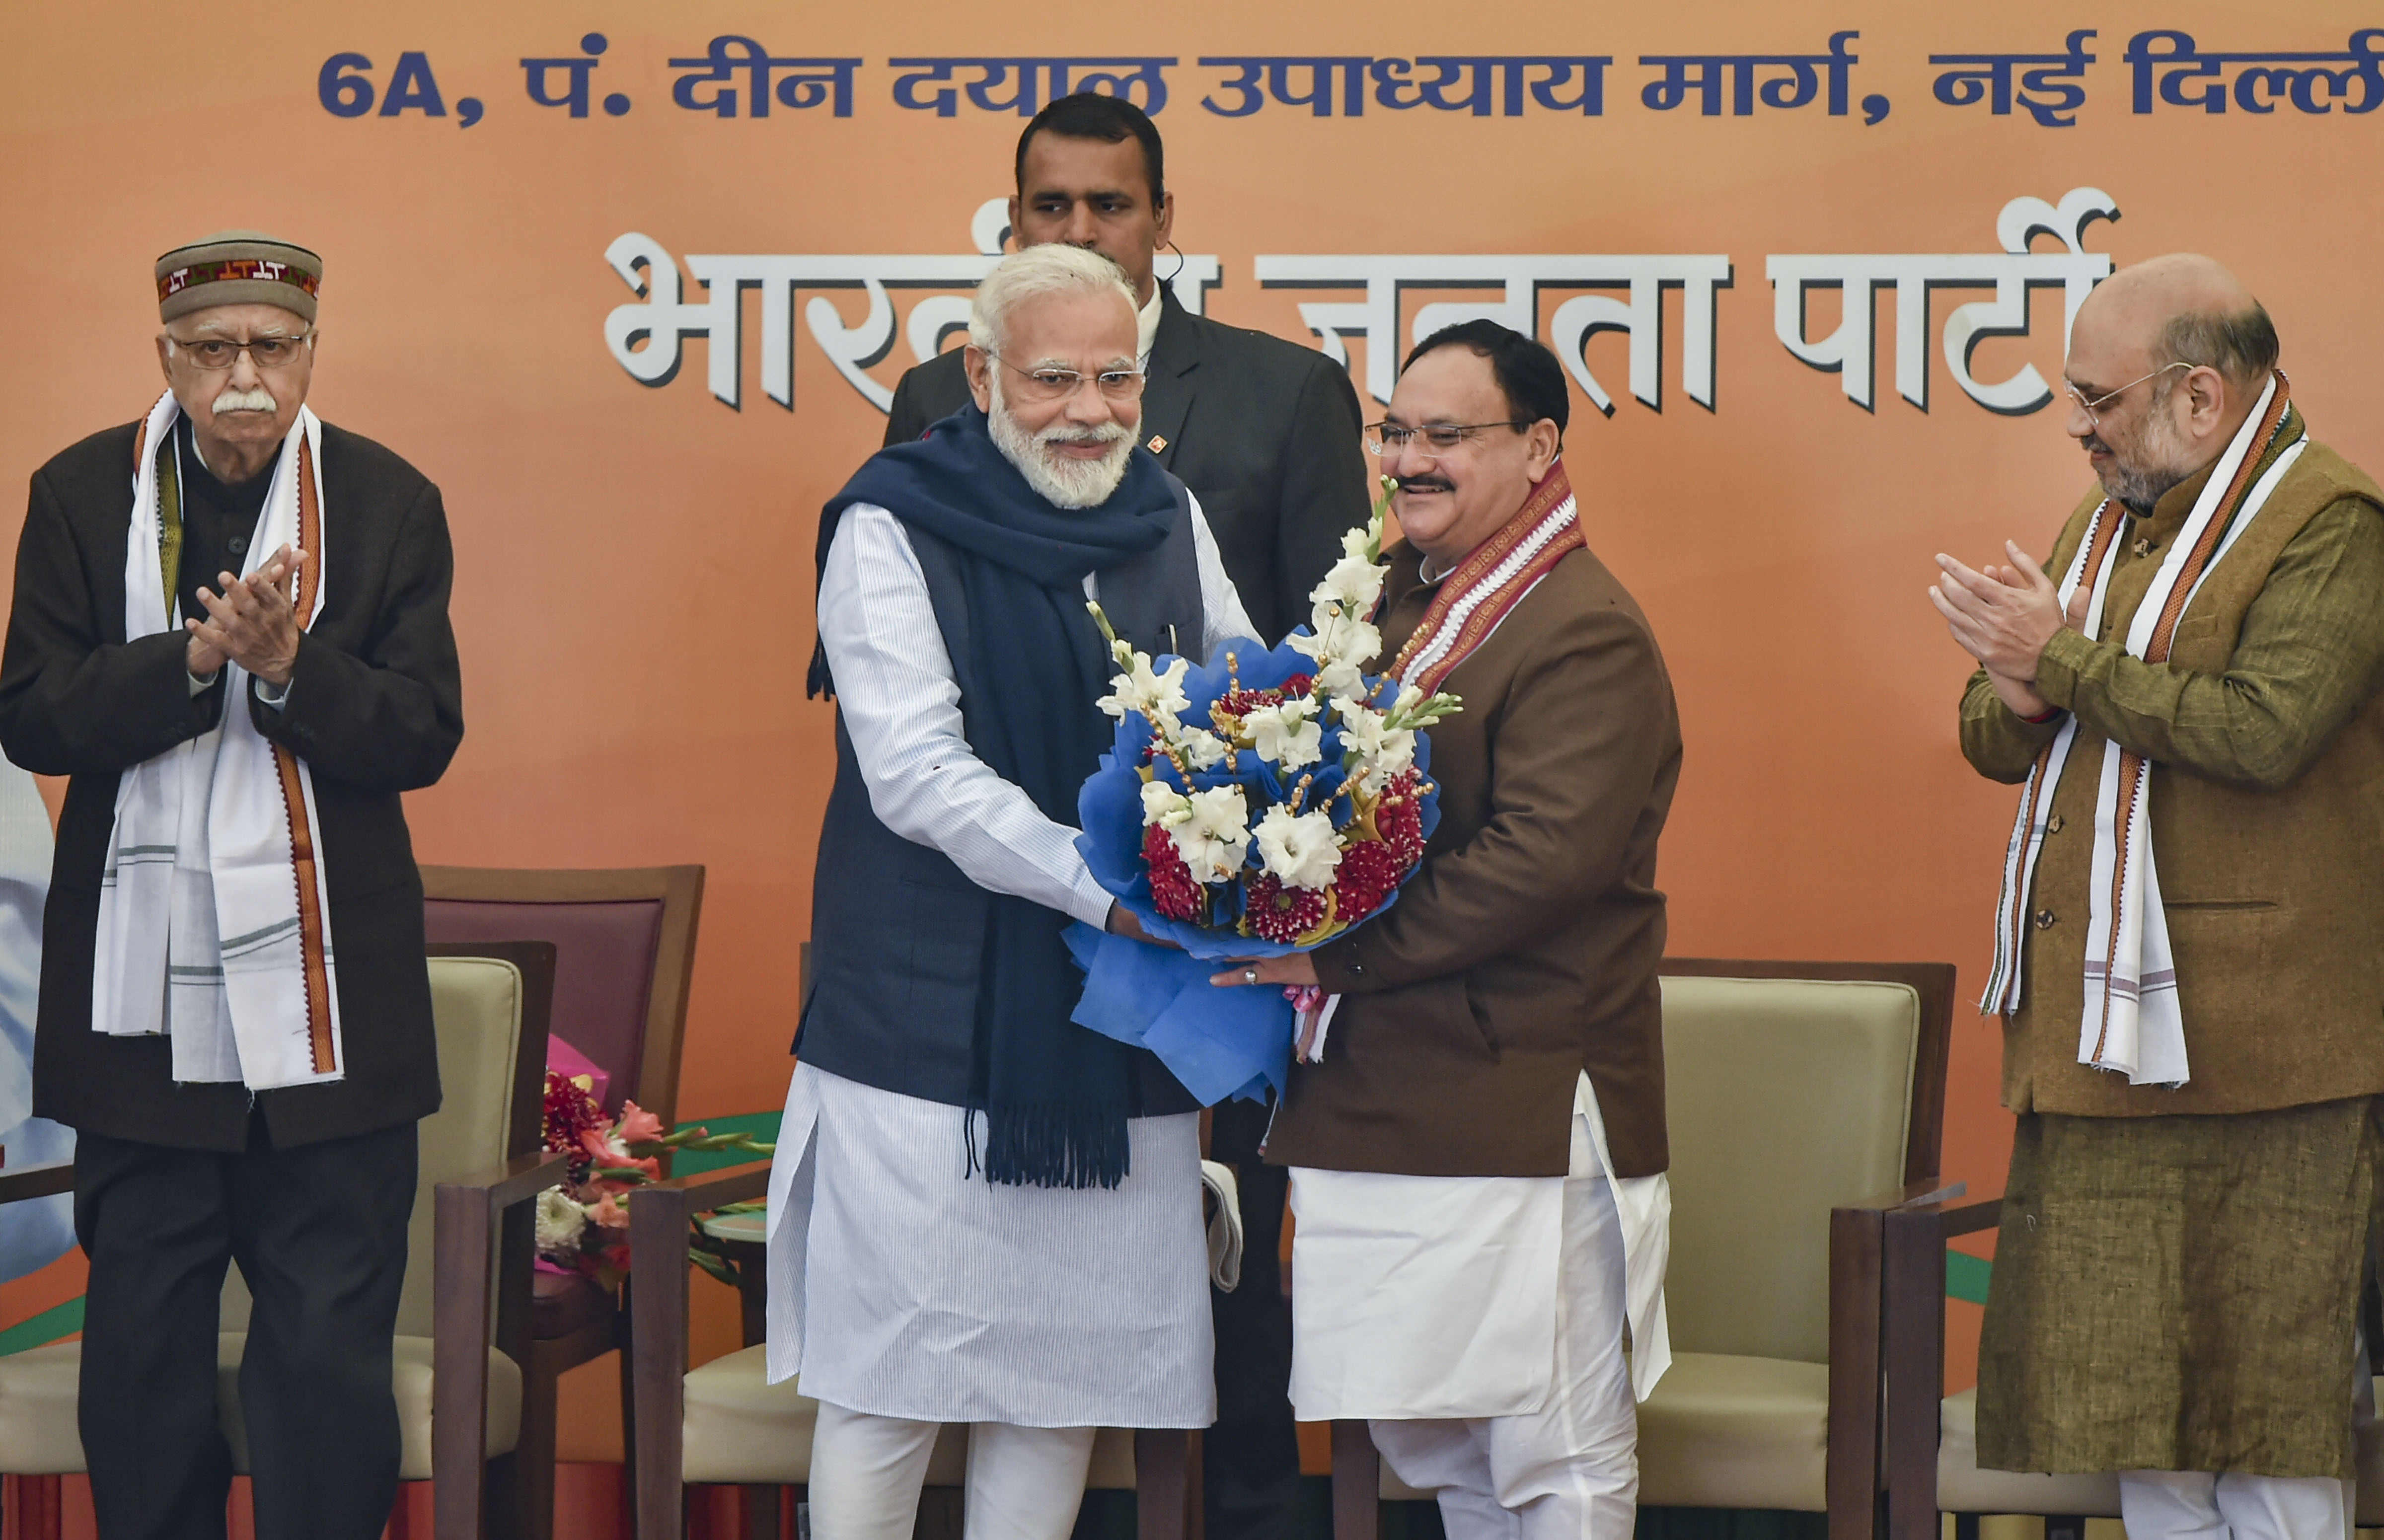 Prime Minister Narendra Modi with newly elected BJP National President JP Nadda (C), after the latter was elected as the new chief of the BJP unit unopposed, at BJP HQ in New Delhi, Monday, January 20, 2020. Veteran party leader L.K. Advani (L) and Union home minister Amit Shah (R) are also seen.